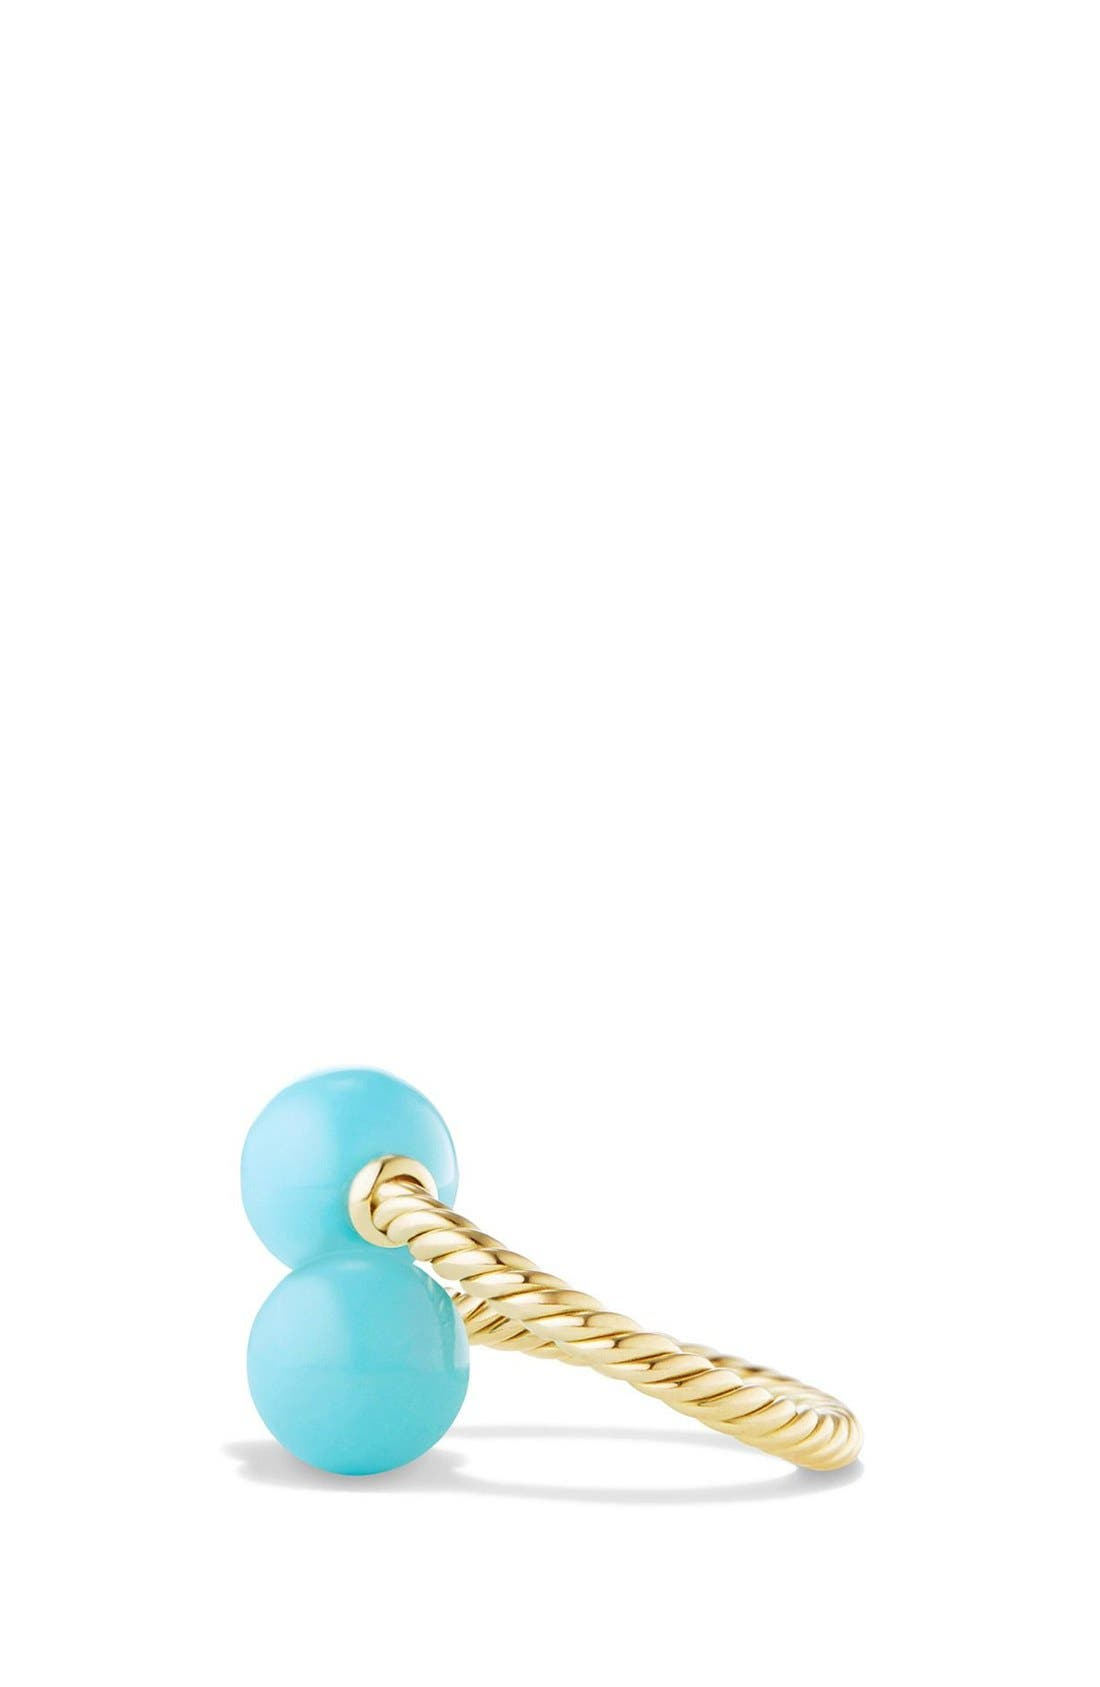 'Solari' Bead Ring with Turquoise in 18K Gold,                             Alternate thumbnail 2, color,                             Turquoise